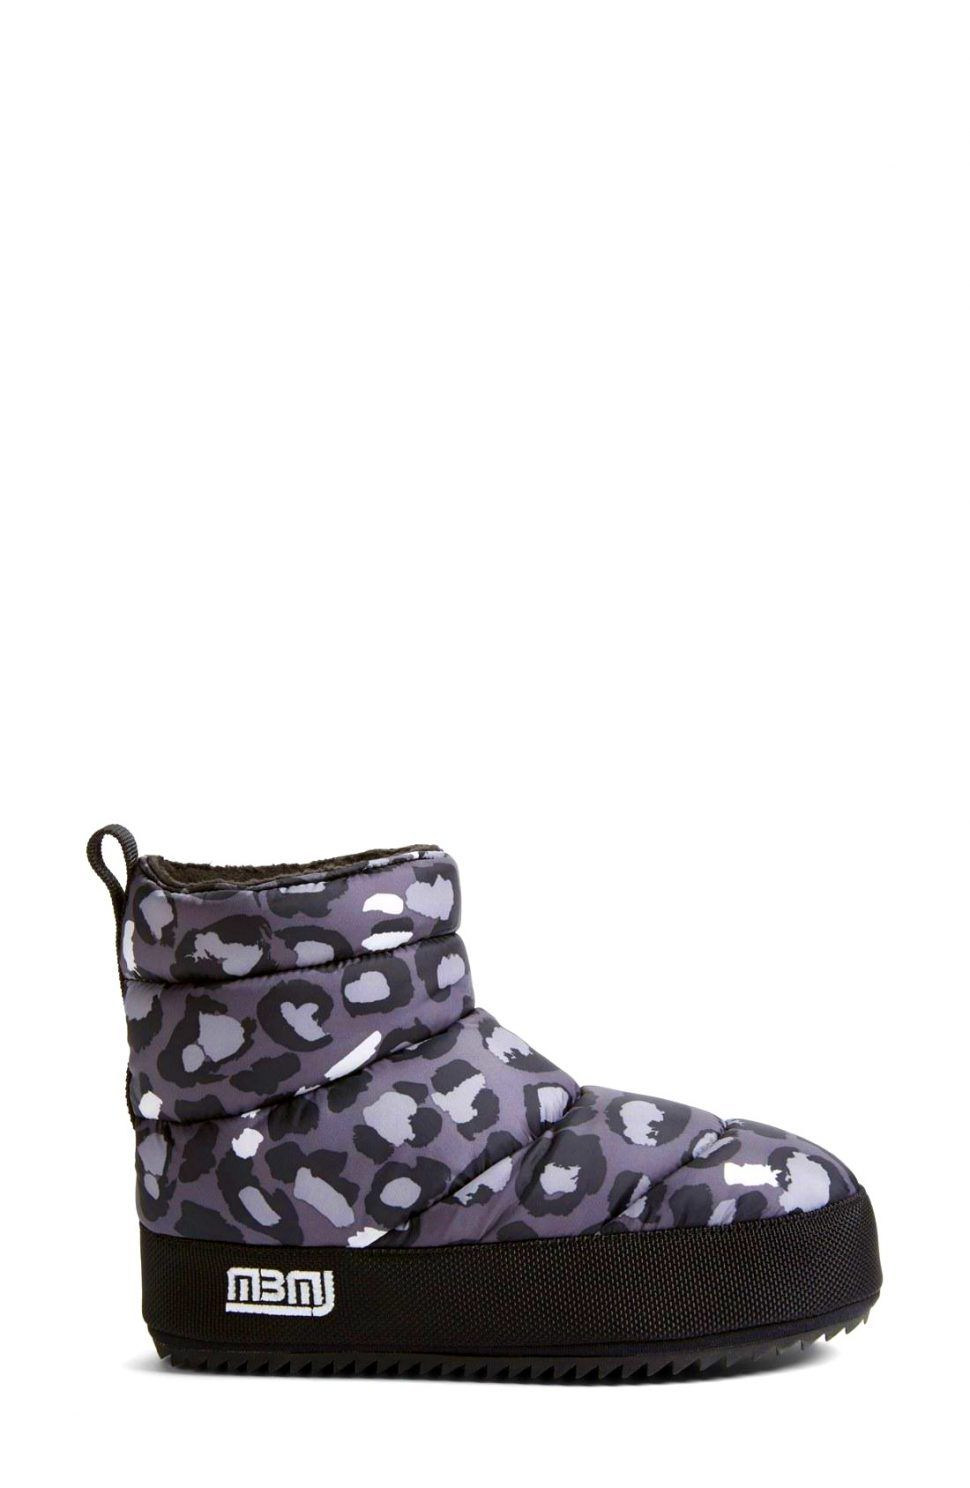 ClimbingRavishing Marc Jacobs Womens Macdougal Tent Bootie Booties North Face Women Uk Down Rei  sc 1 st  Pinterest & Climbing:Ravishing Marc Jacobs Womens Macdougal Tent Bootie ...